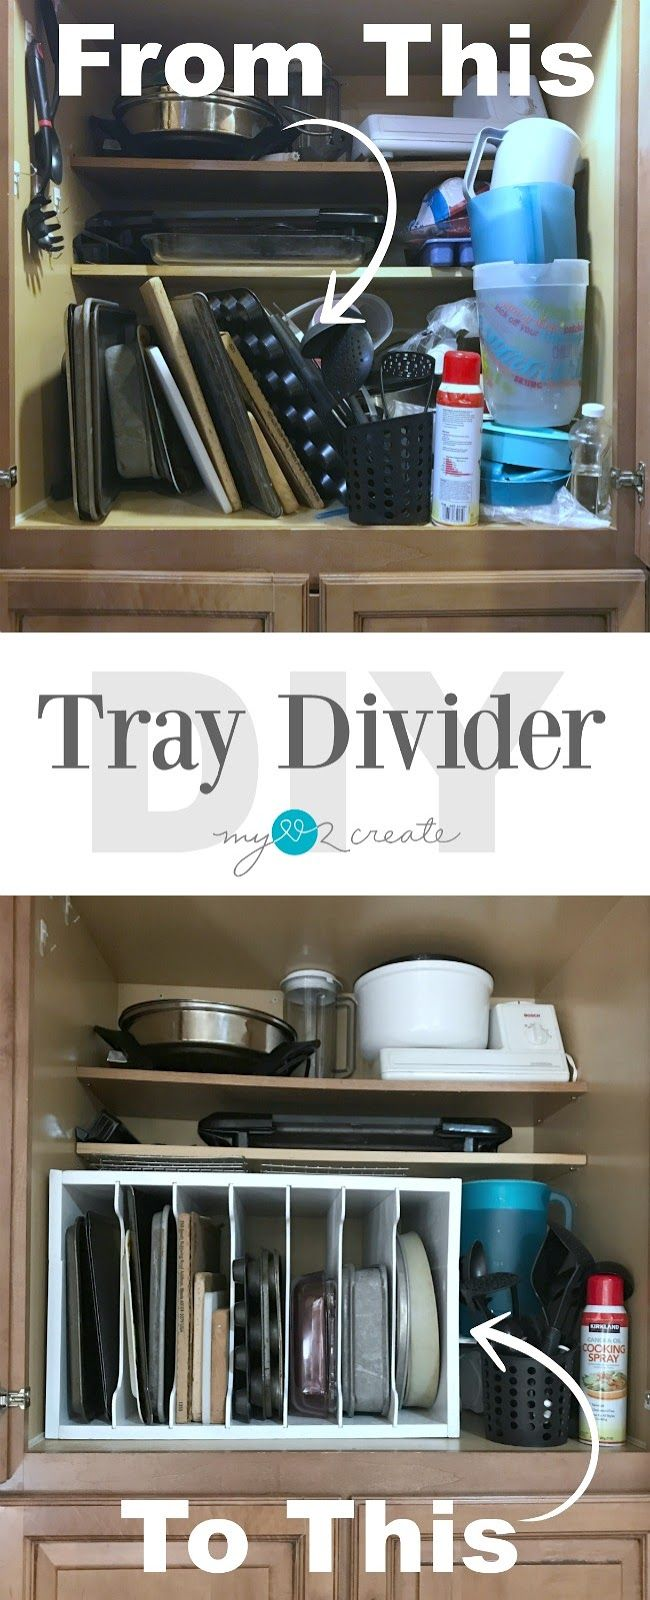 How to make a tray divider using dado joints with free plans and a